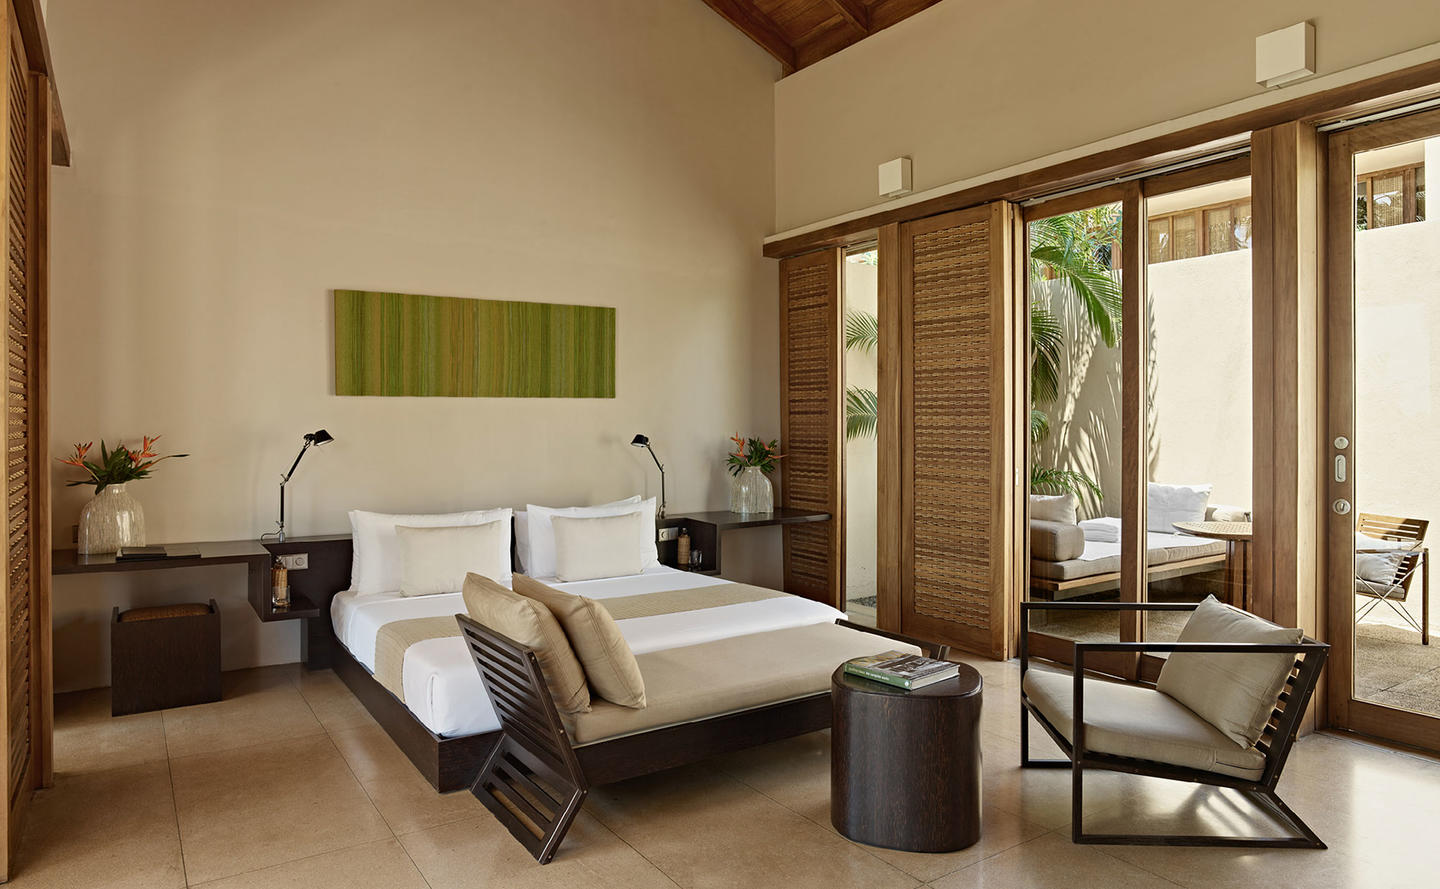 Bedroom, Garden Pool Suite - Amanwella, Sri Lanka